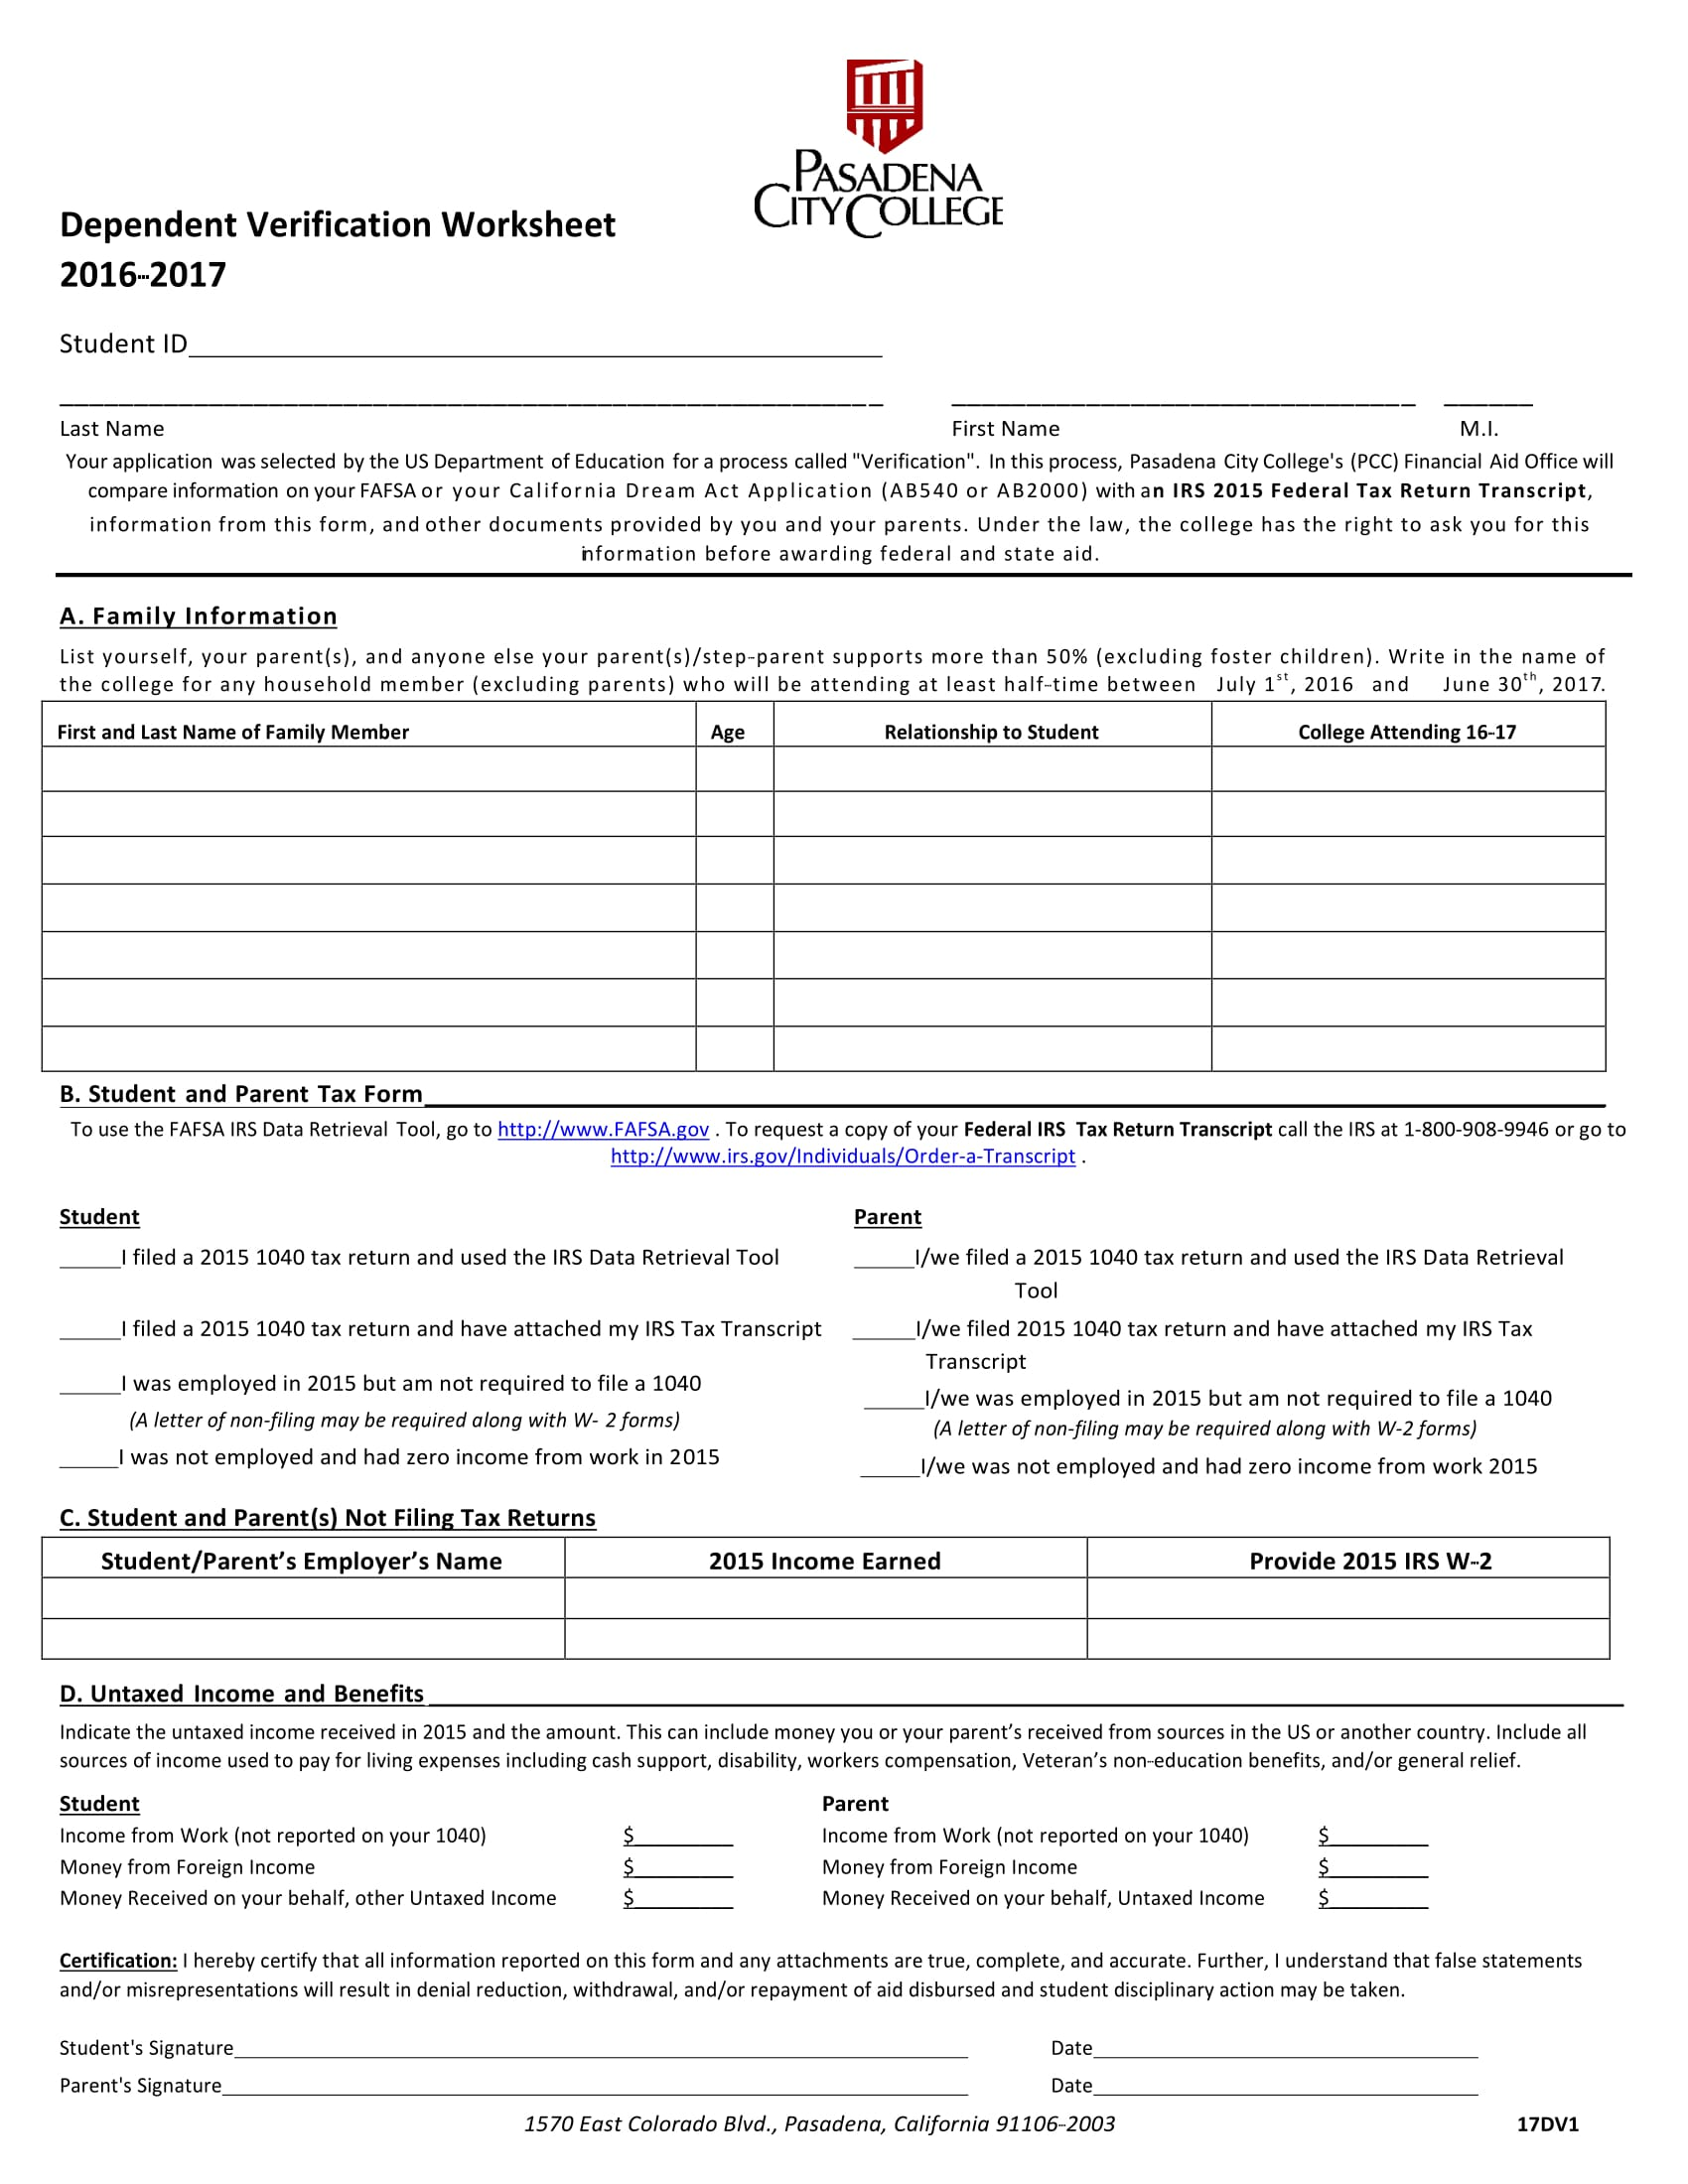 Dependent Student Non Tax Filer Verification Form